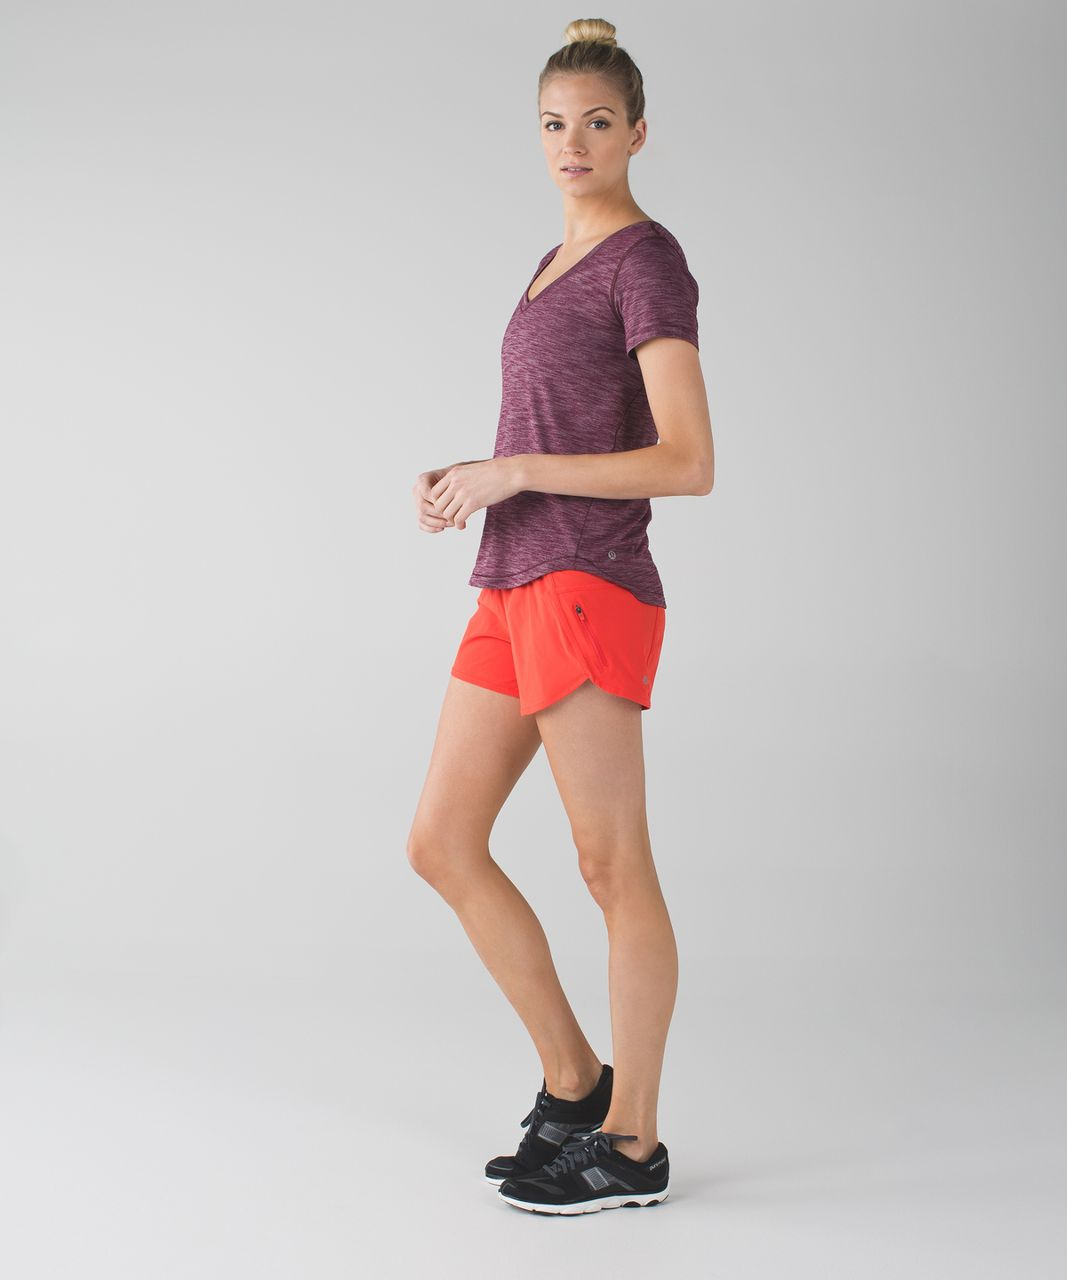 Lululemon Tracker Short III (4-way Stretch) - Alarming / Miss Mosaic Alarming Red Grape